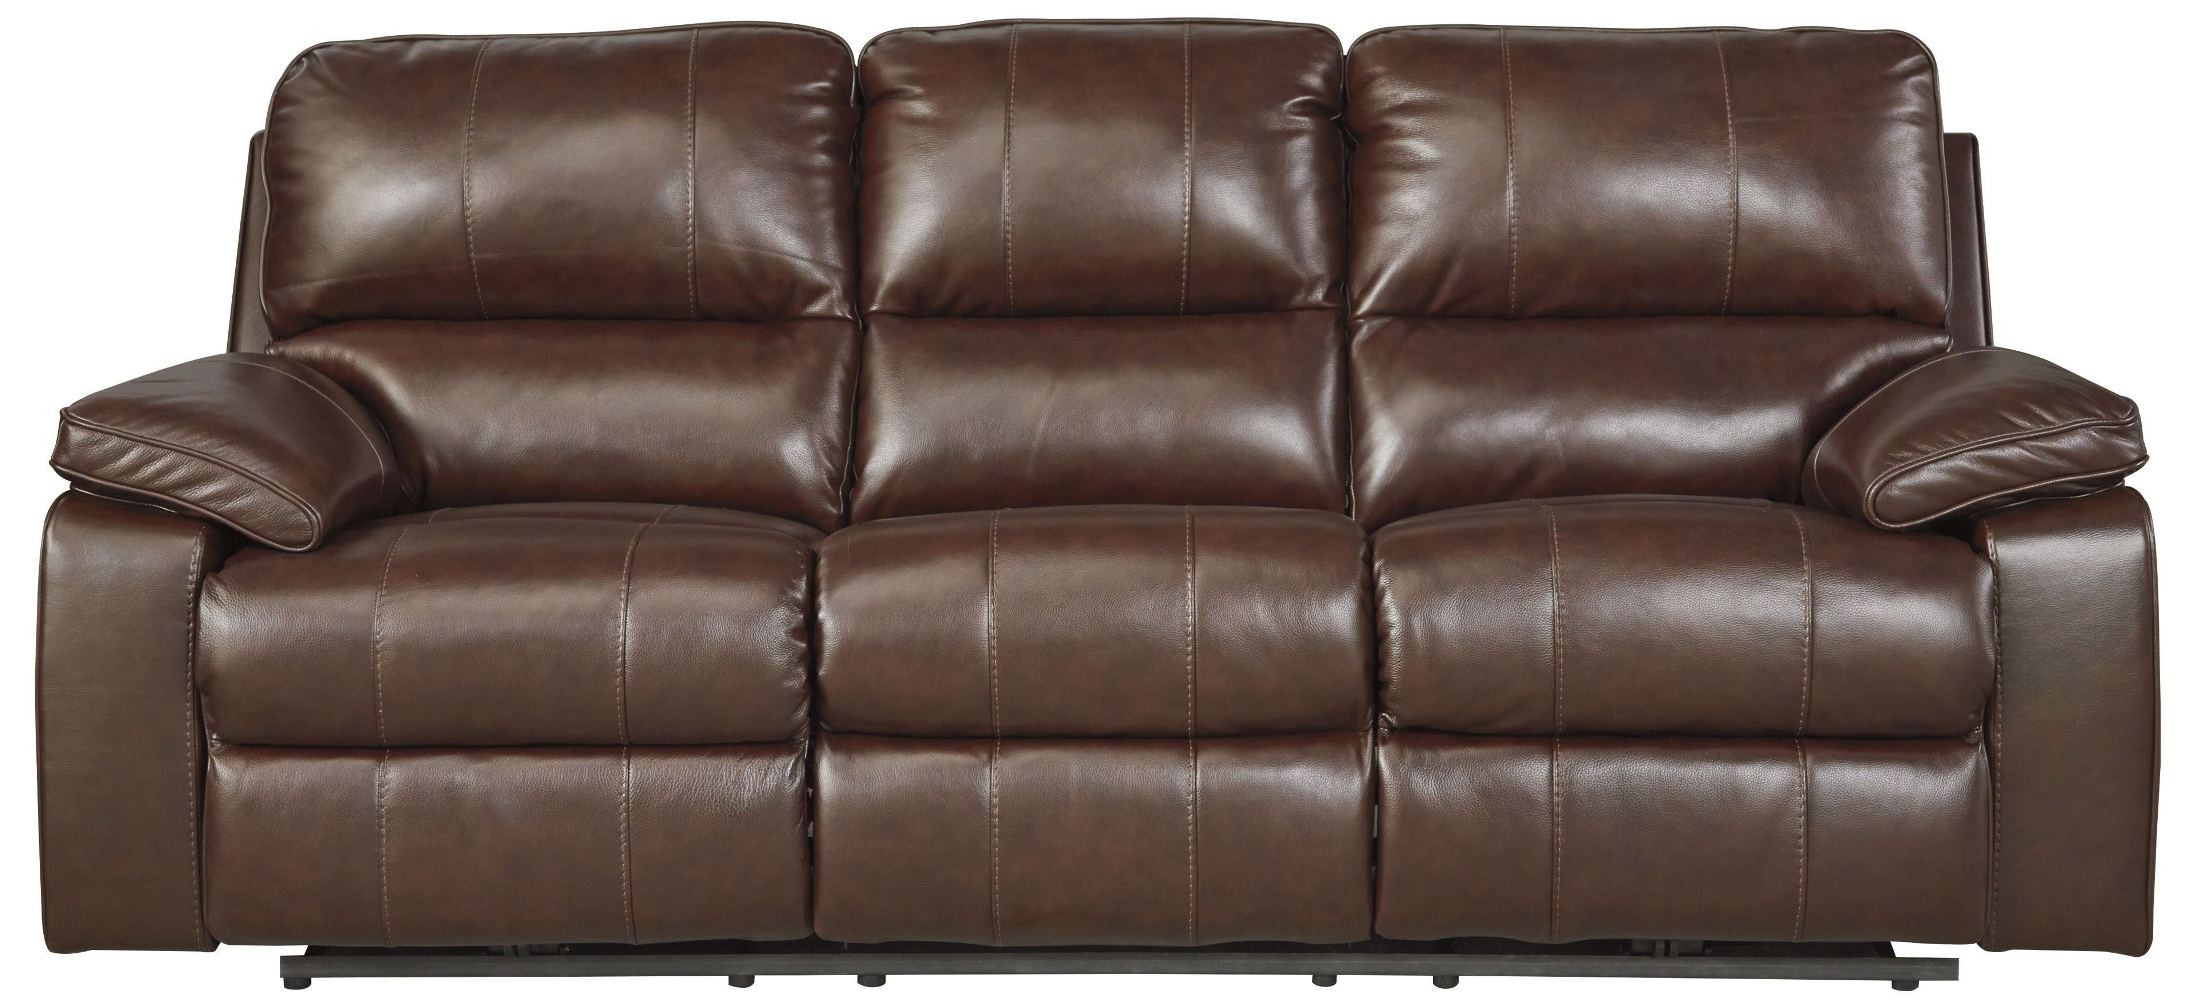 1655817 & Transister Coffee Power Reclining Sofa from Ashley | Coleman Furniture islam-shia.org